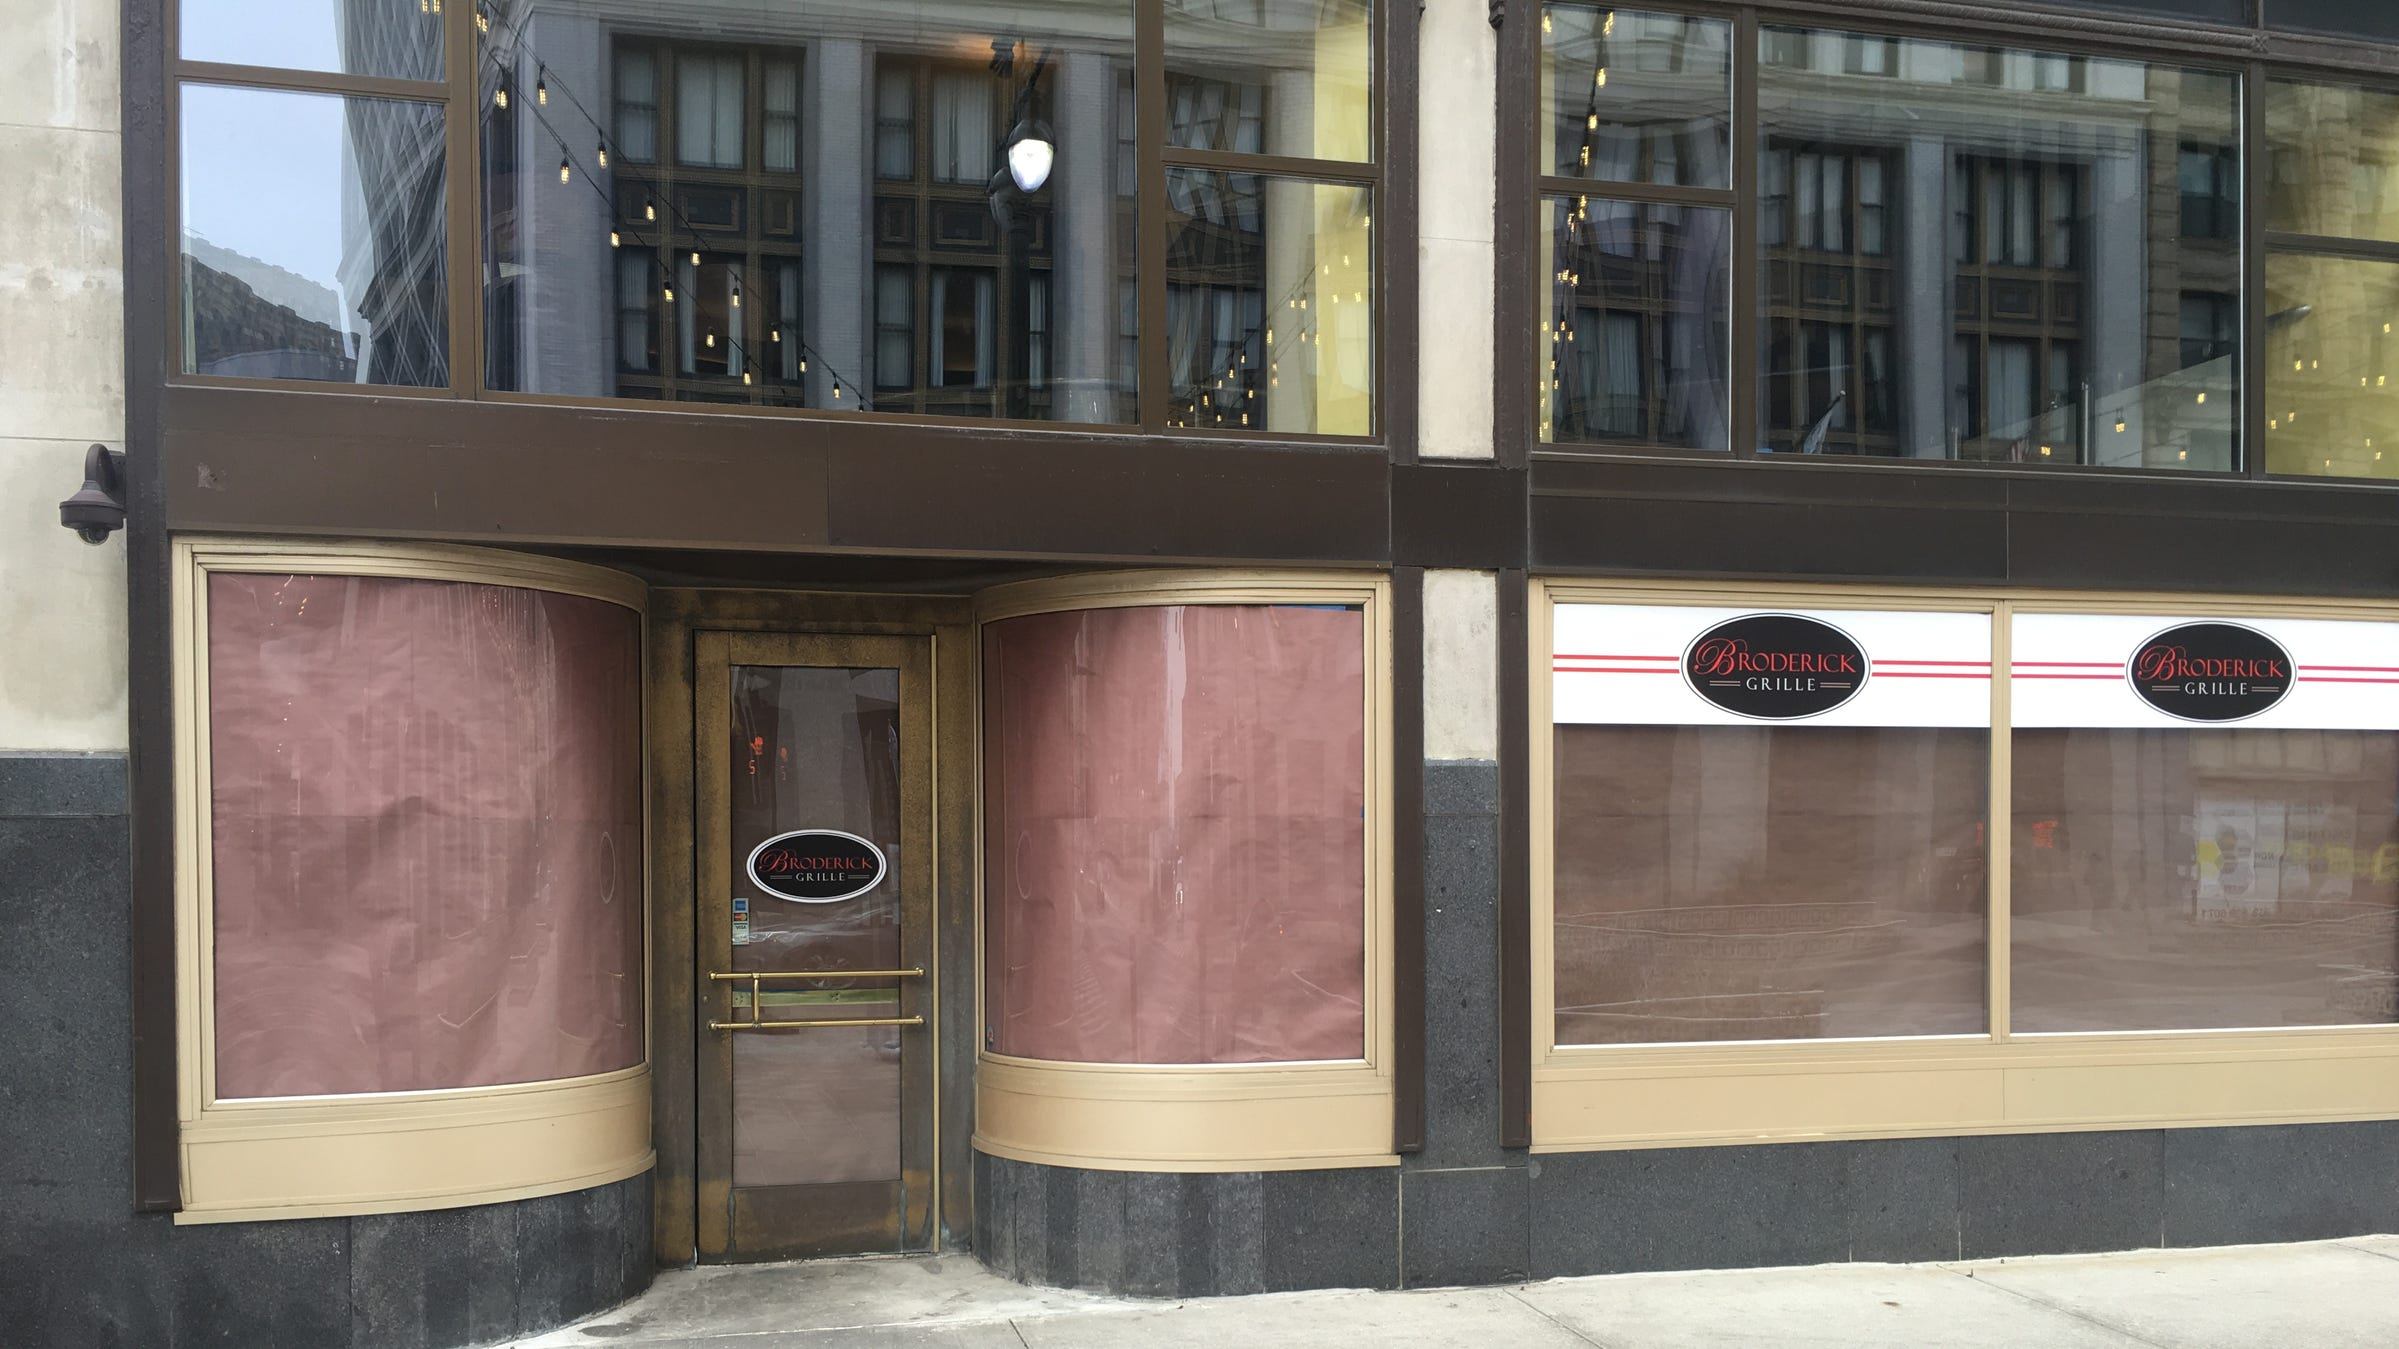 Paper covers the windows at the Broderick Grille located on the ground floor of the Broderick Tower.